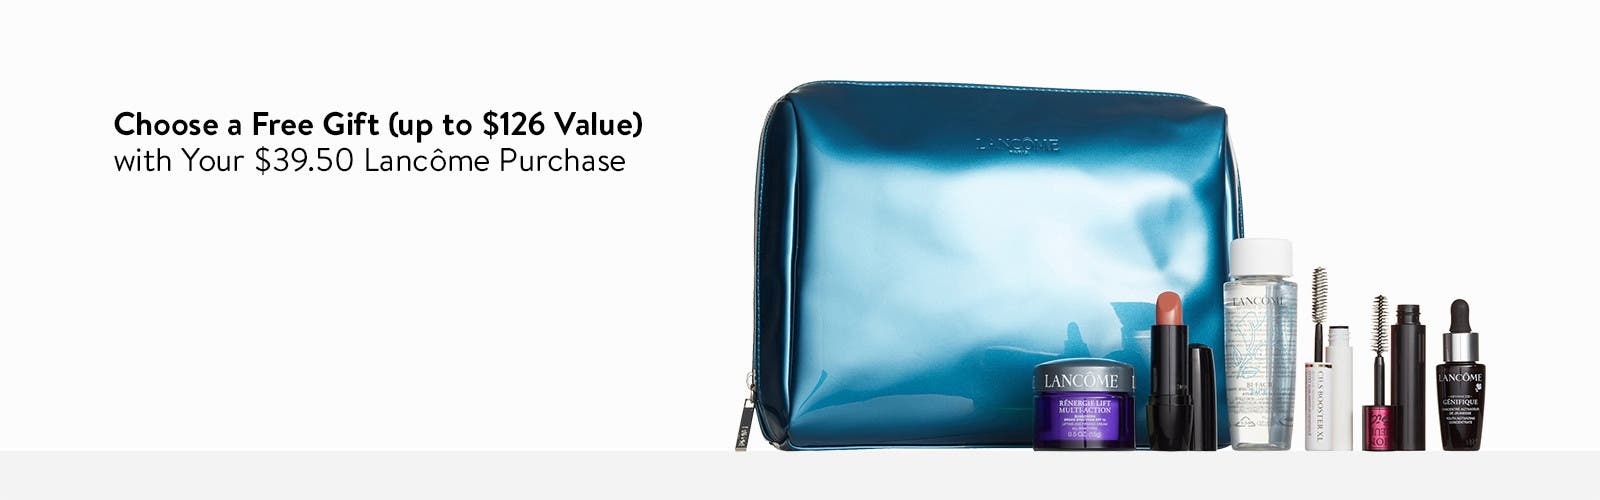 Choose your free gift with $39.50 Lancôme purchase. Up to $126 value.